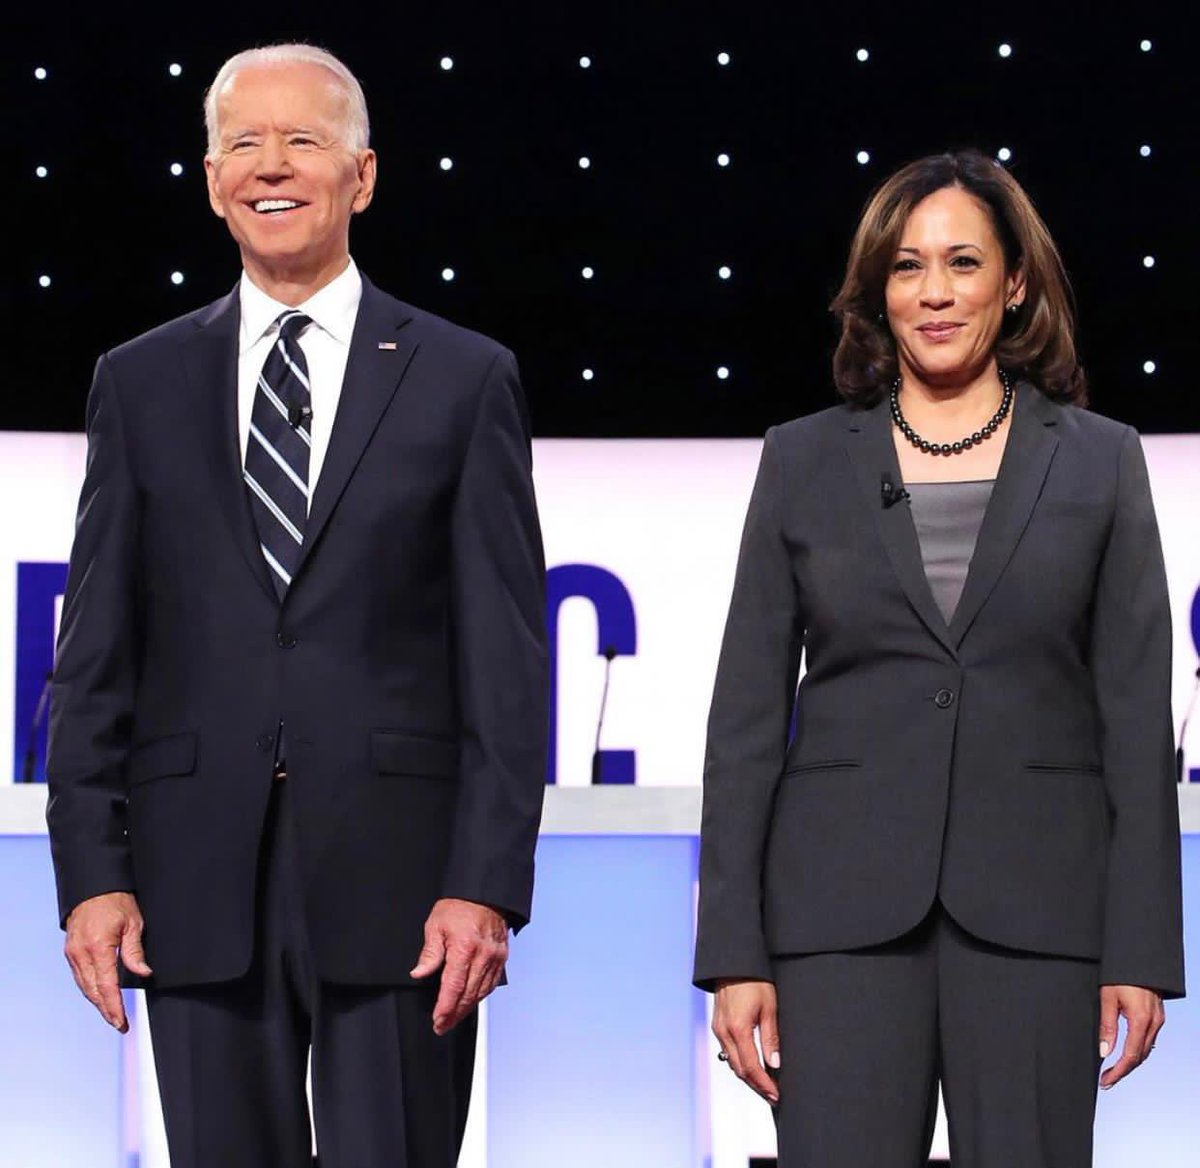 Andrew Holness On Twitter 1 2 I Extend Congratulations To The President Elect And Vice President Elect Of The United States Joe Biden And Kamala Harris America Will Have Its First Female Vice President In